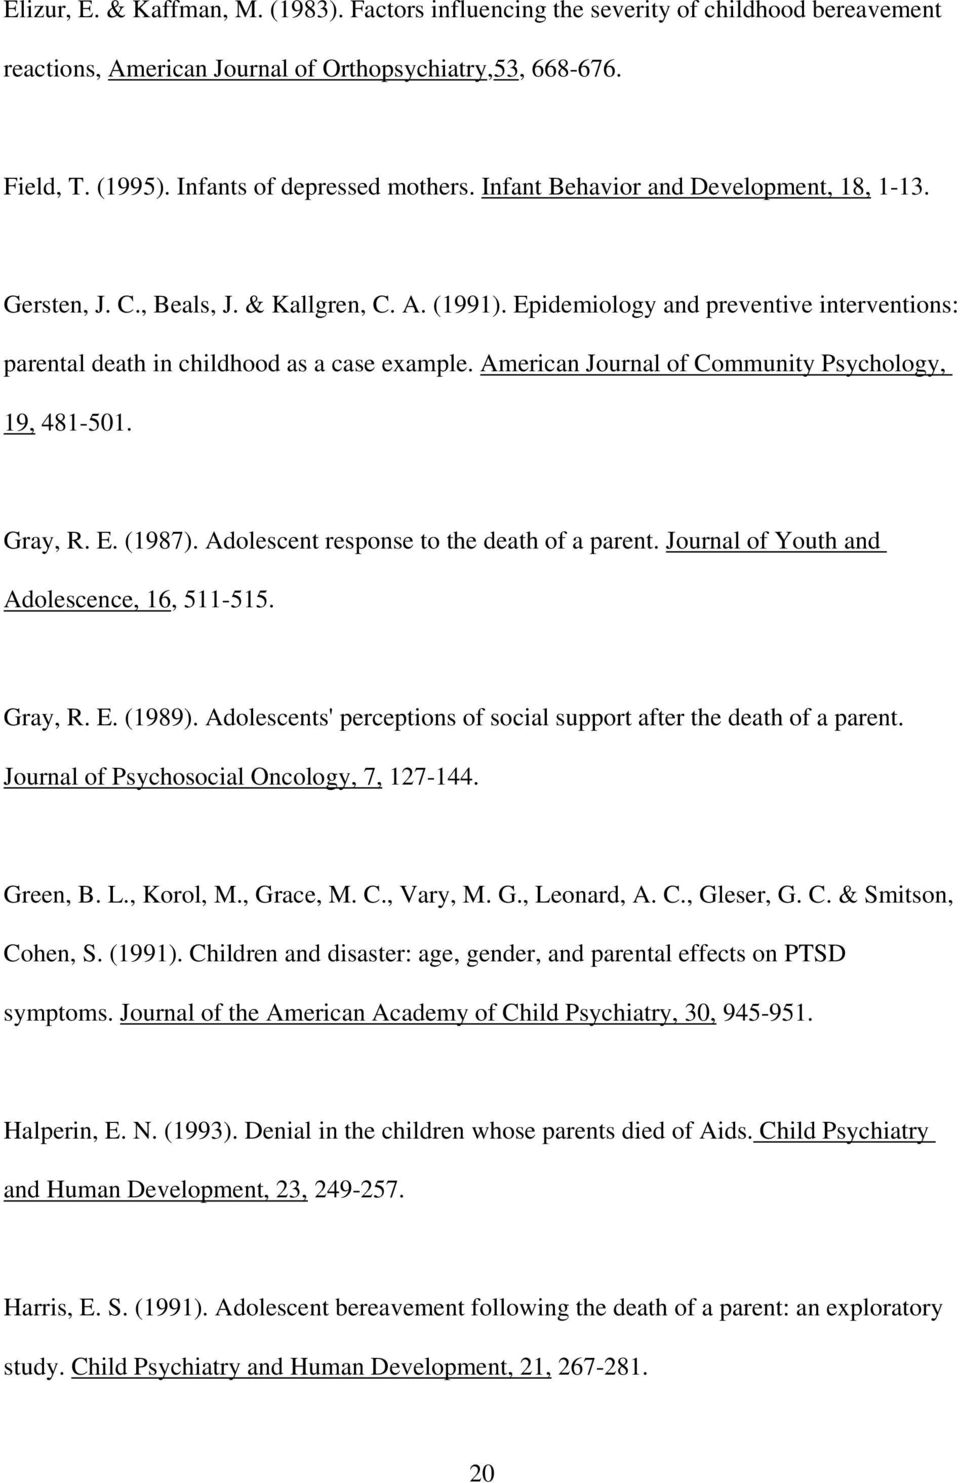 American Journal of Community Psychology, 19, 481-501. Gray, R. E. (1987). Adolescent response to the death of a parent. Journal of Youth and Adolescence, 16, 511-515. Gray, R. E. (1989).